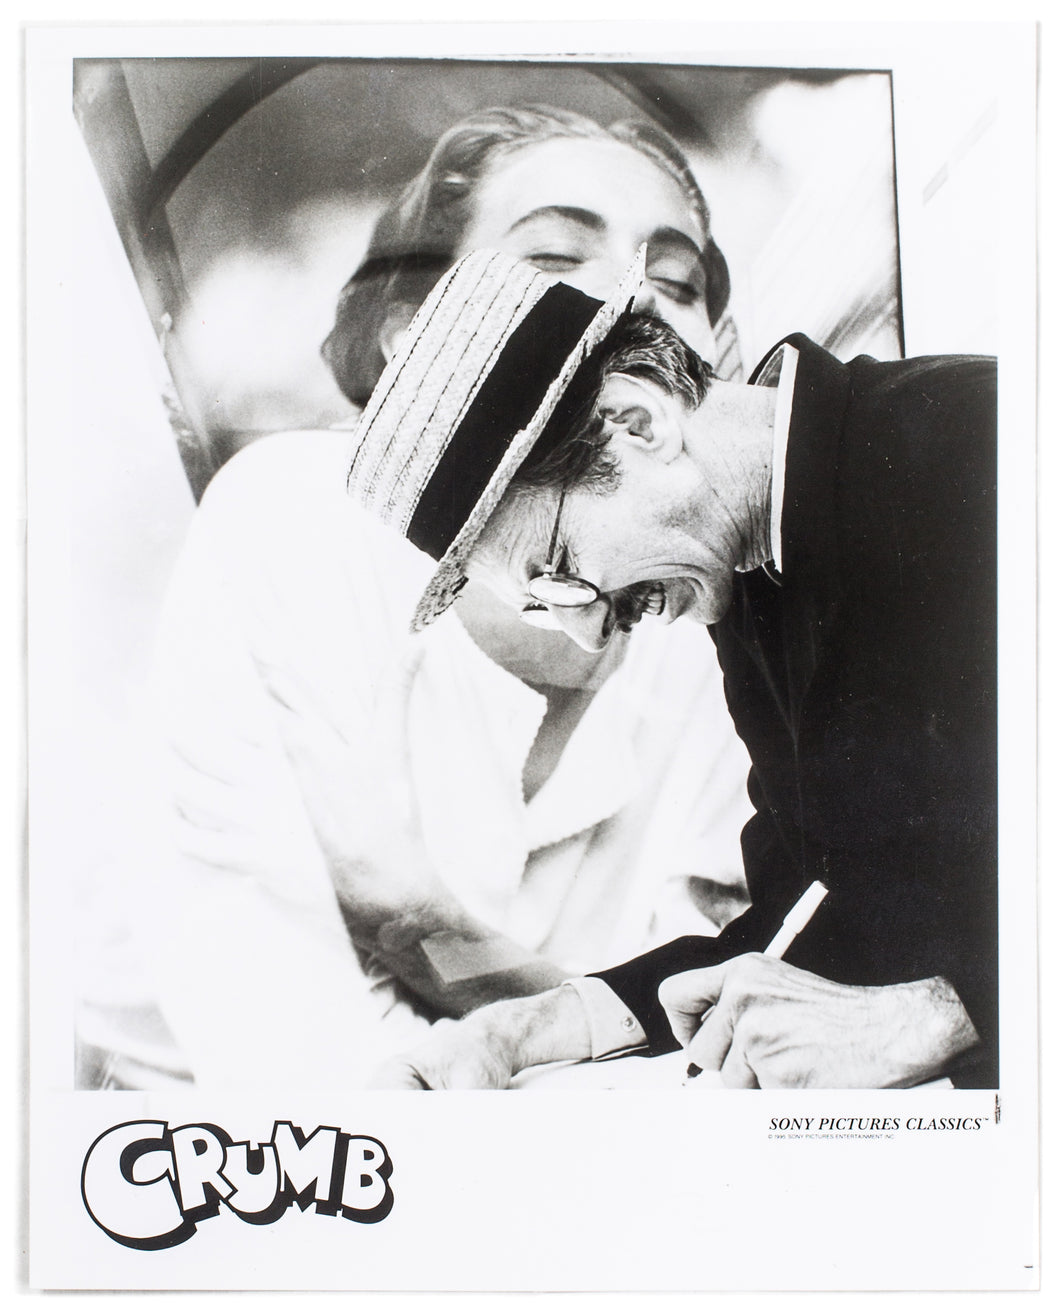 R. CRUMB Press Photograph